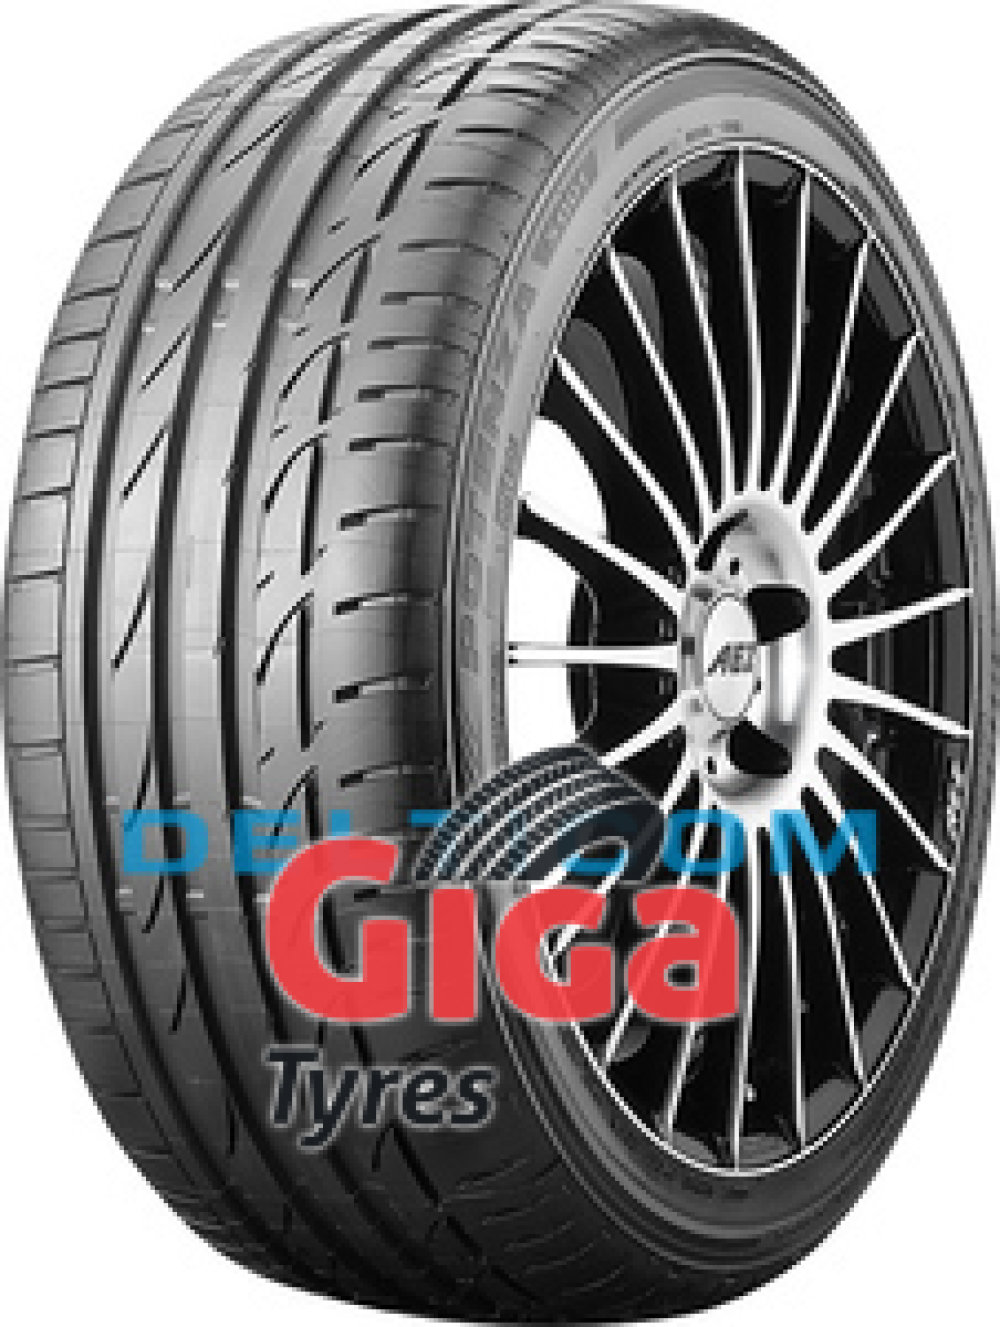 Bridgestone Potenza S001 EXT ( 275/40 R19 101Y MOE, runflat, with rim protection (MFS) )